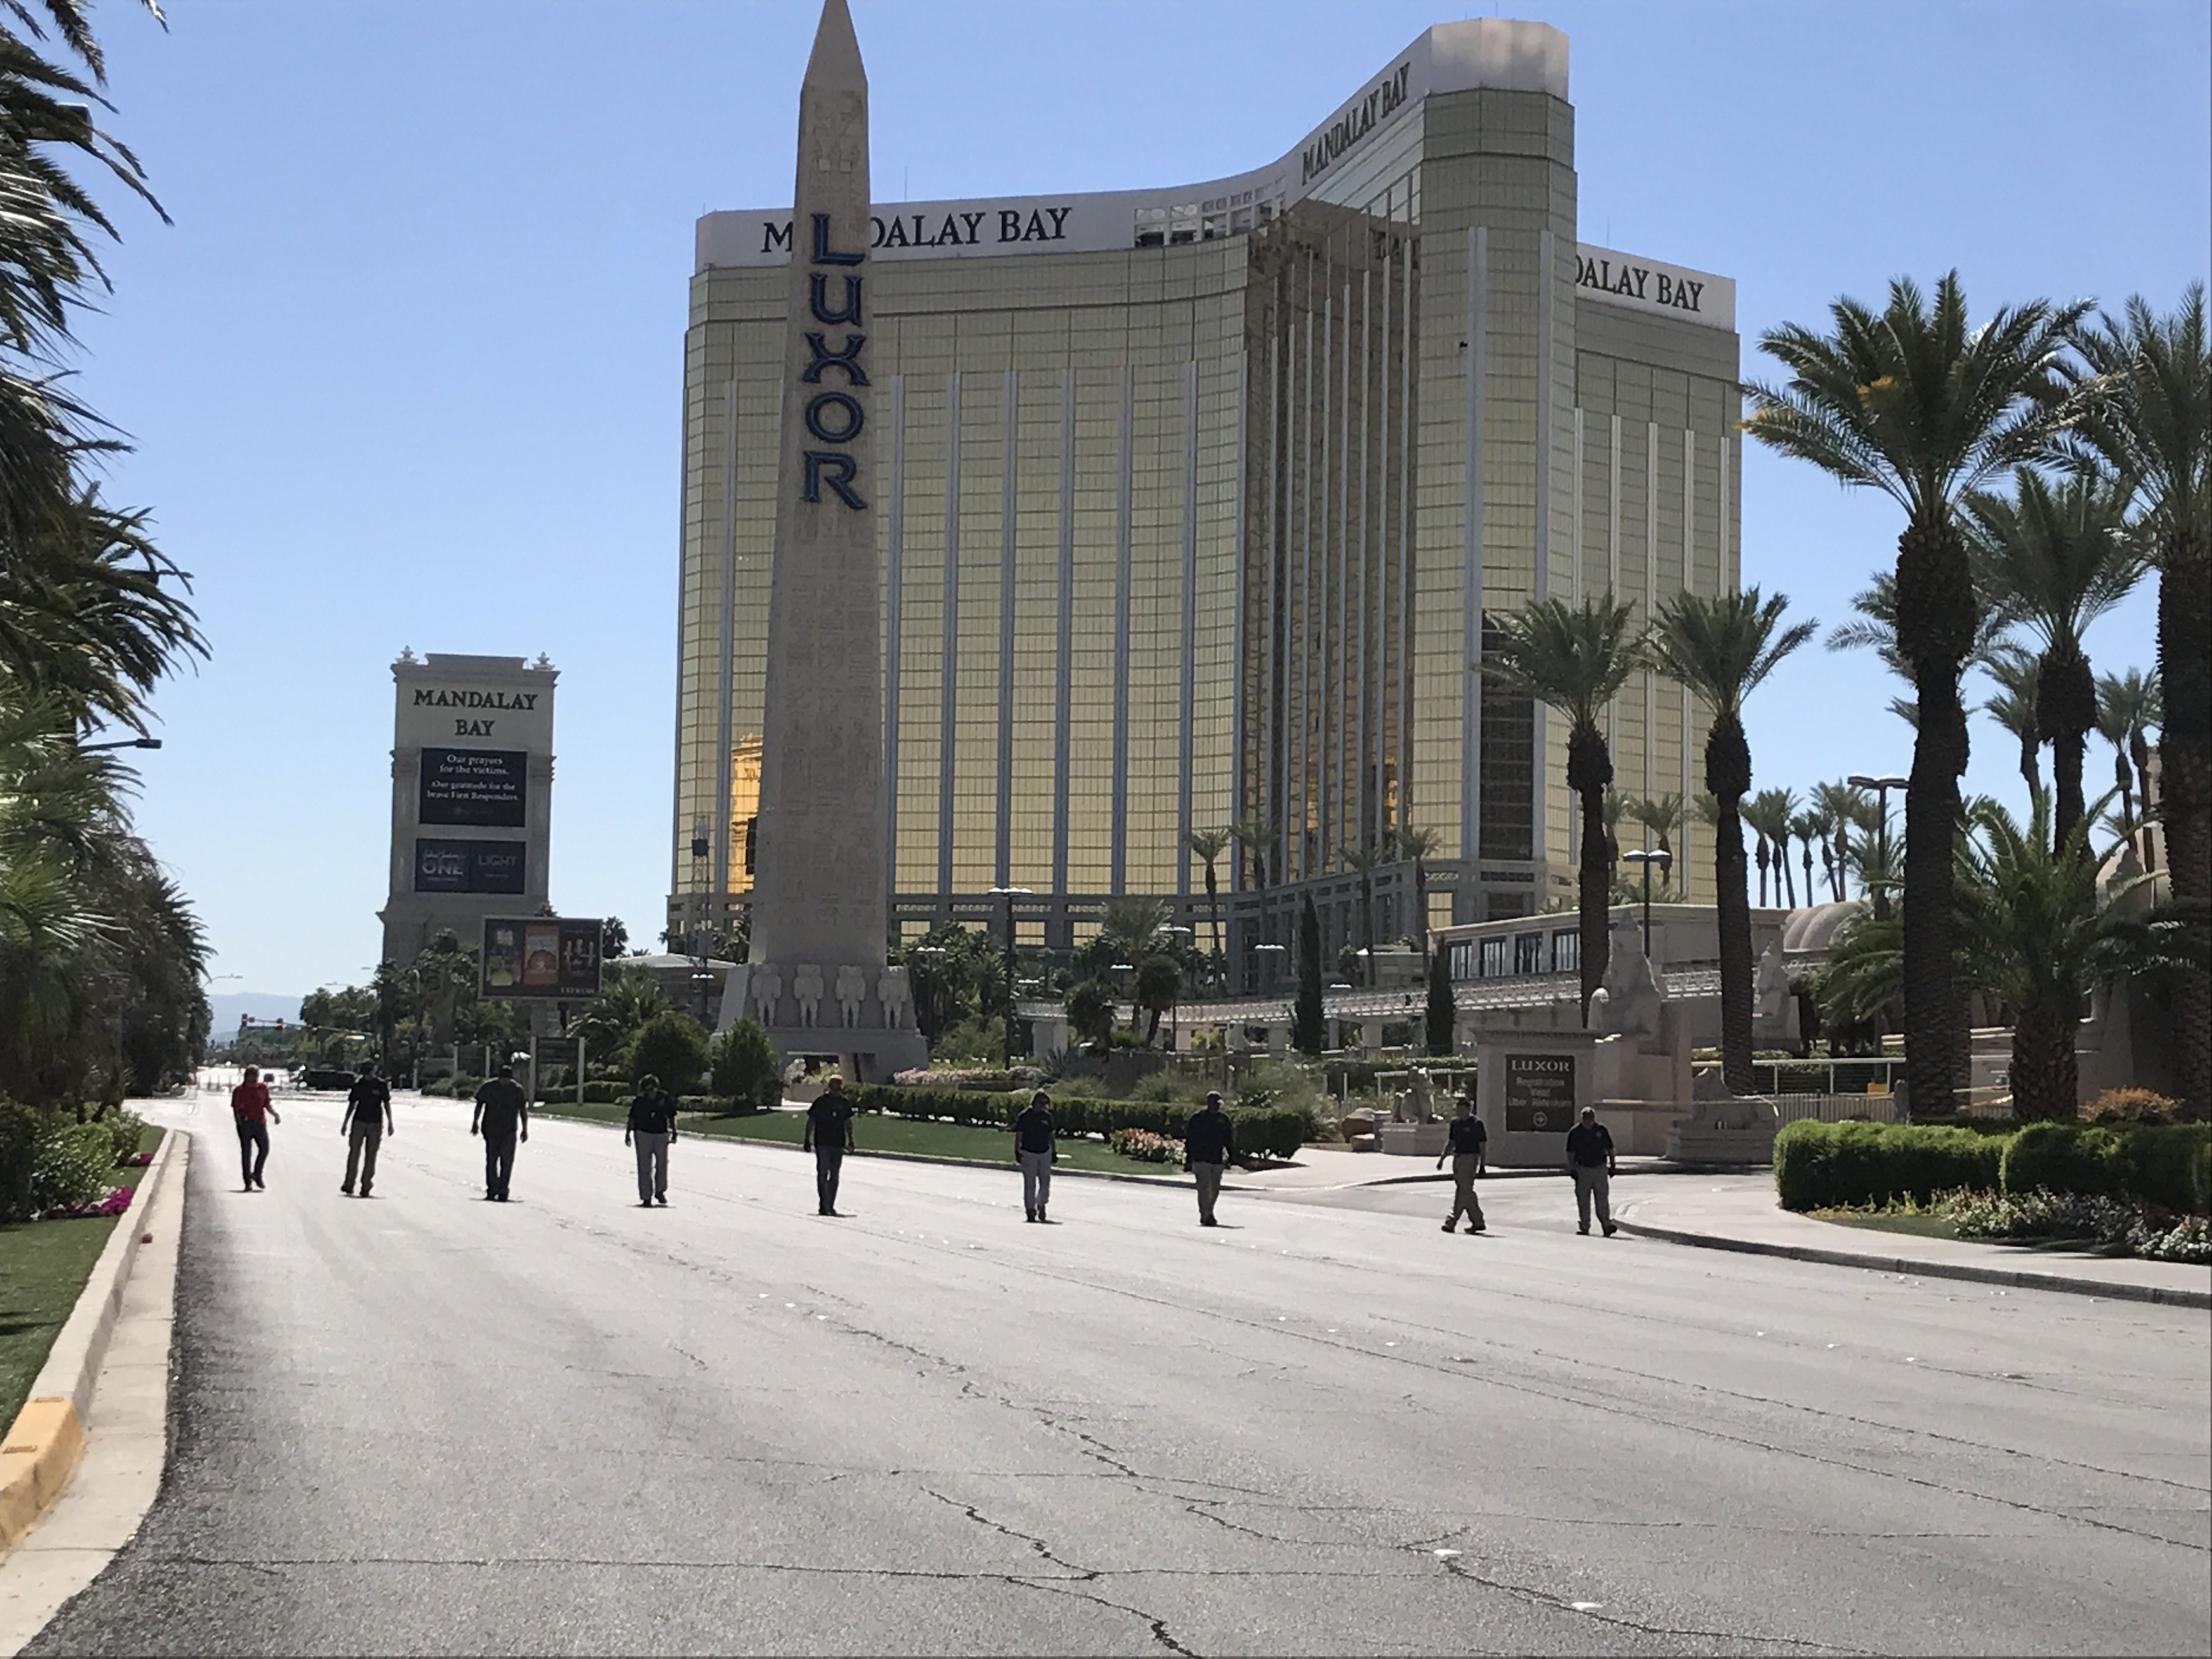 Las Vegas Blvd. closed off with crime scene tape two days after the mass shooting by Stephen Paddock. FBI investigators walk the street in front of Mandalay Bay and Luxor looking for clues. courtesy of CNN.